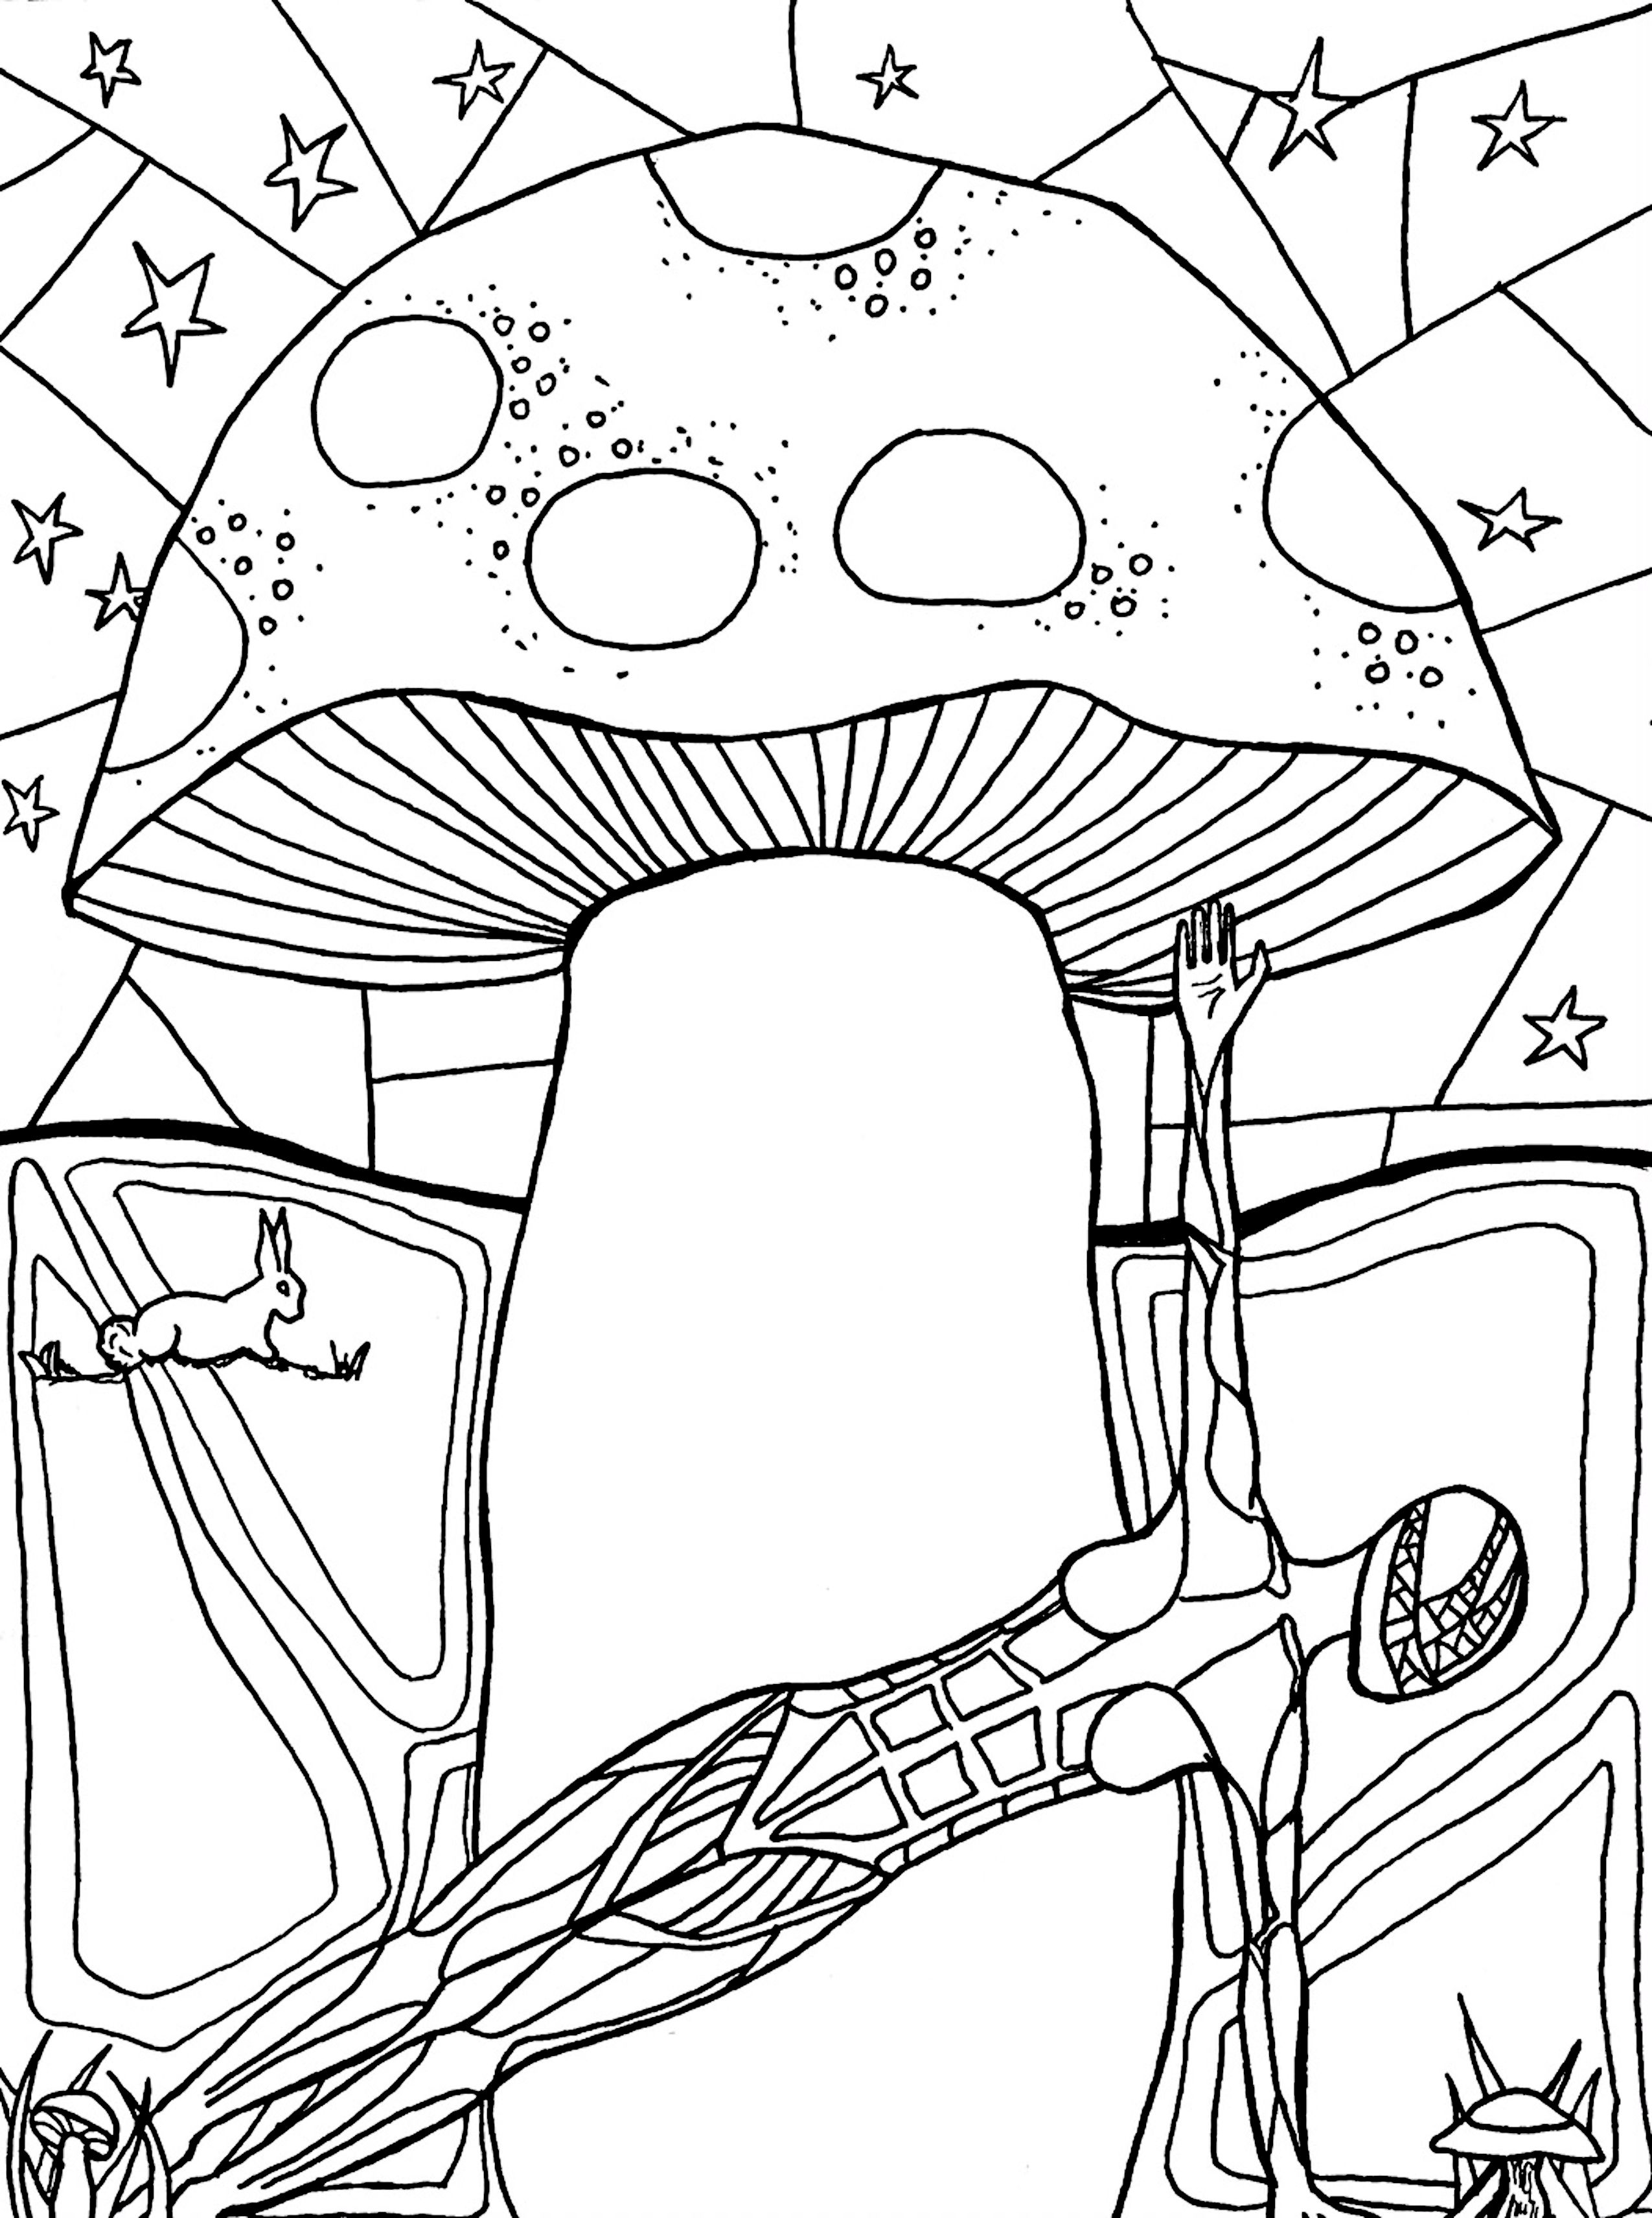 A Coloring Page from \